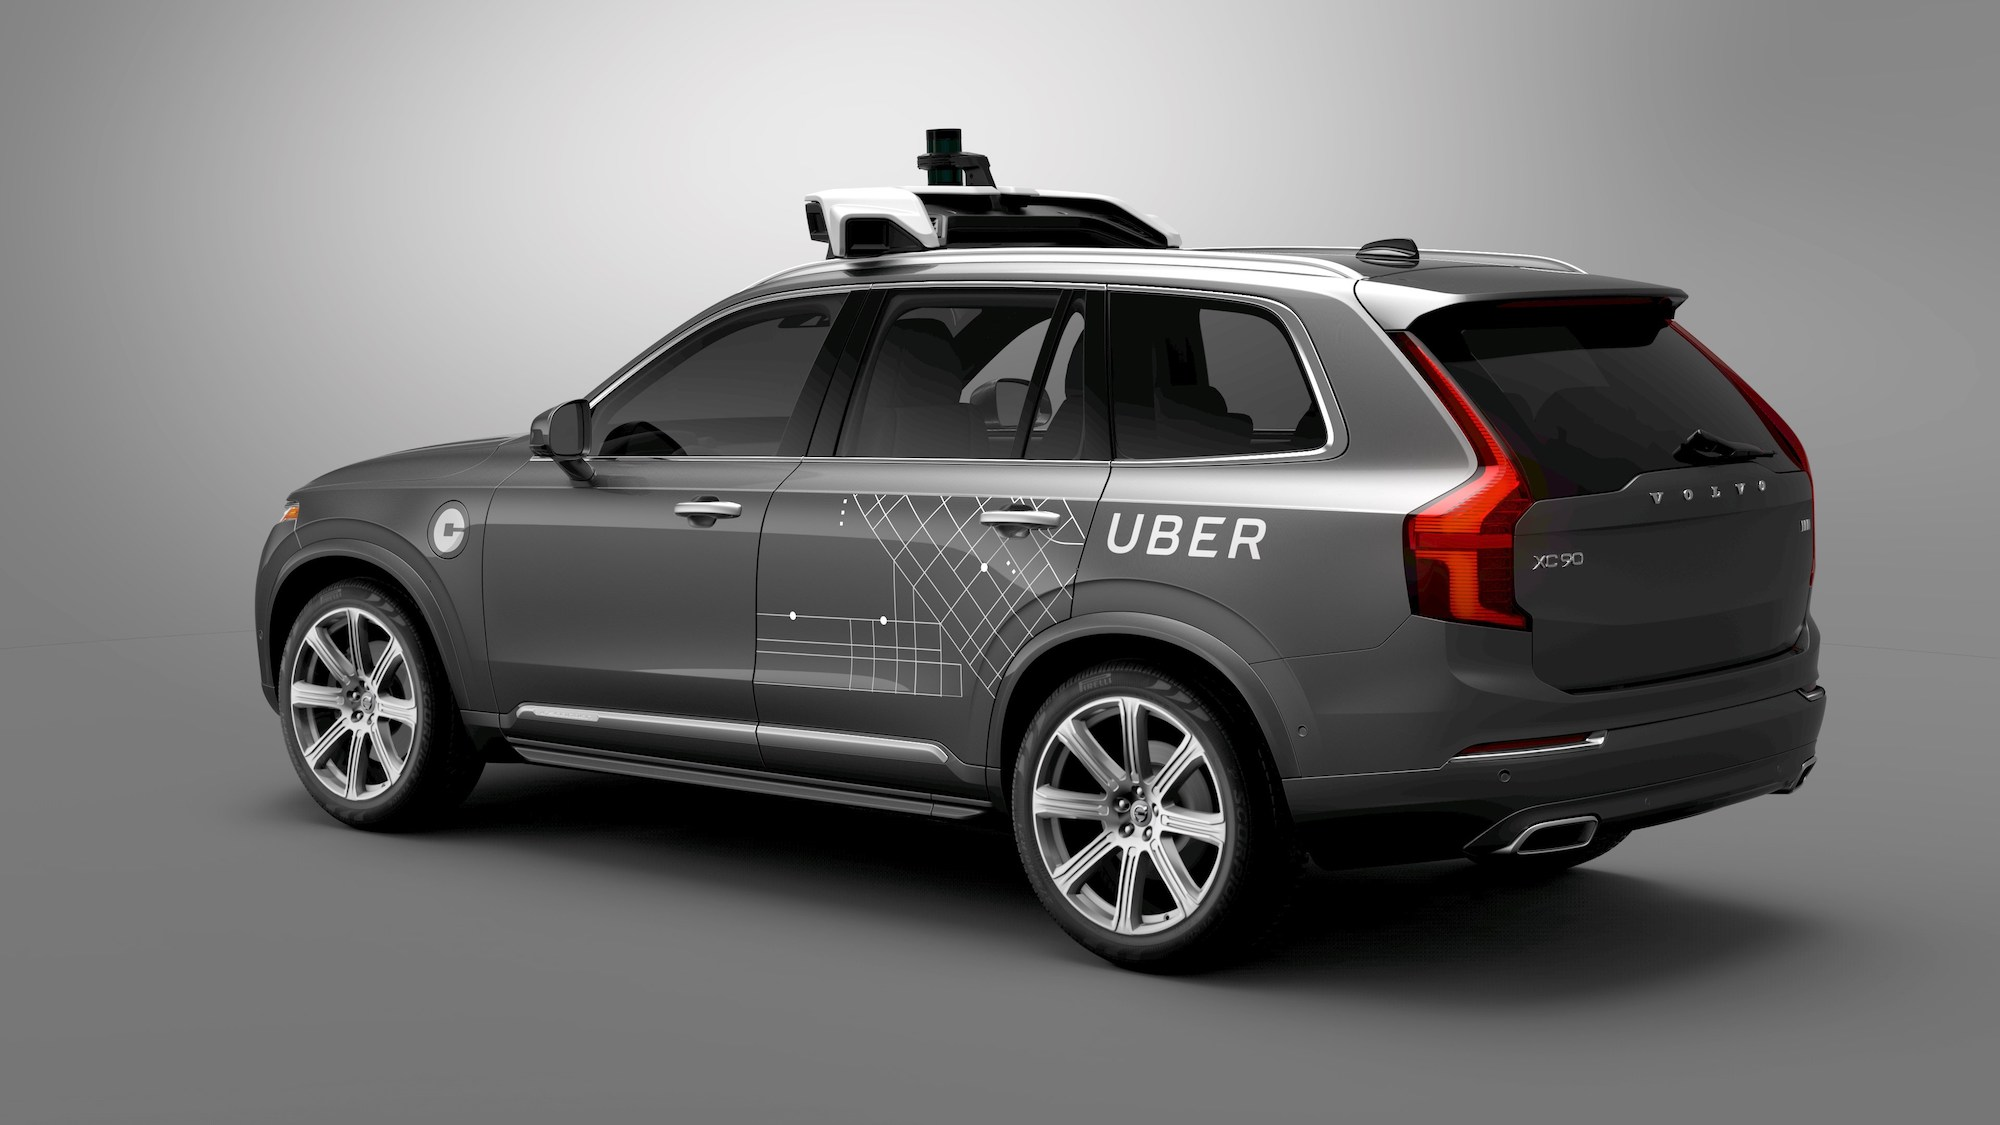 Uber buys fleet of 24000 driverless cars from Volvo